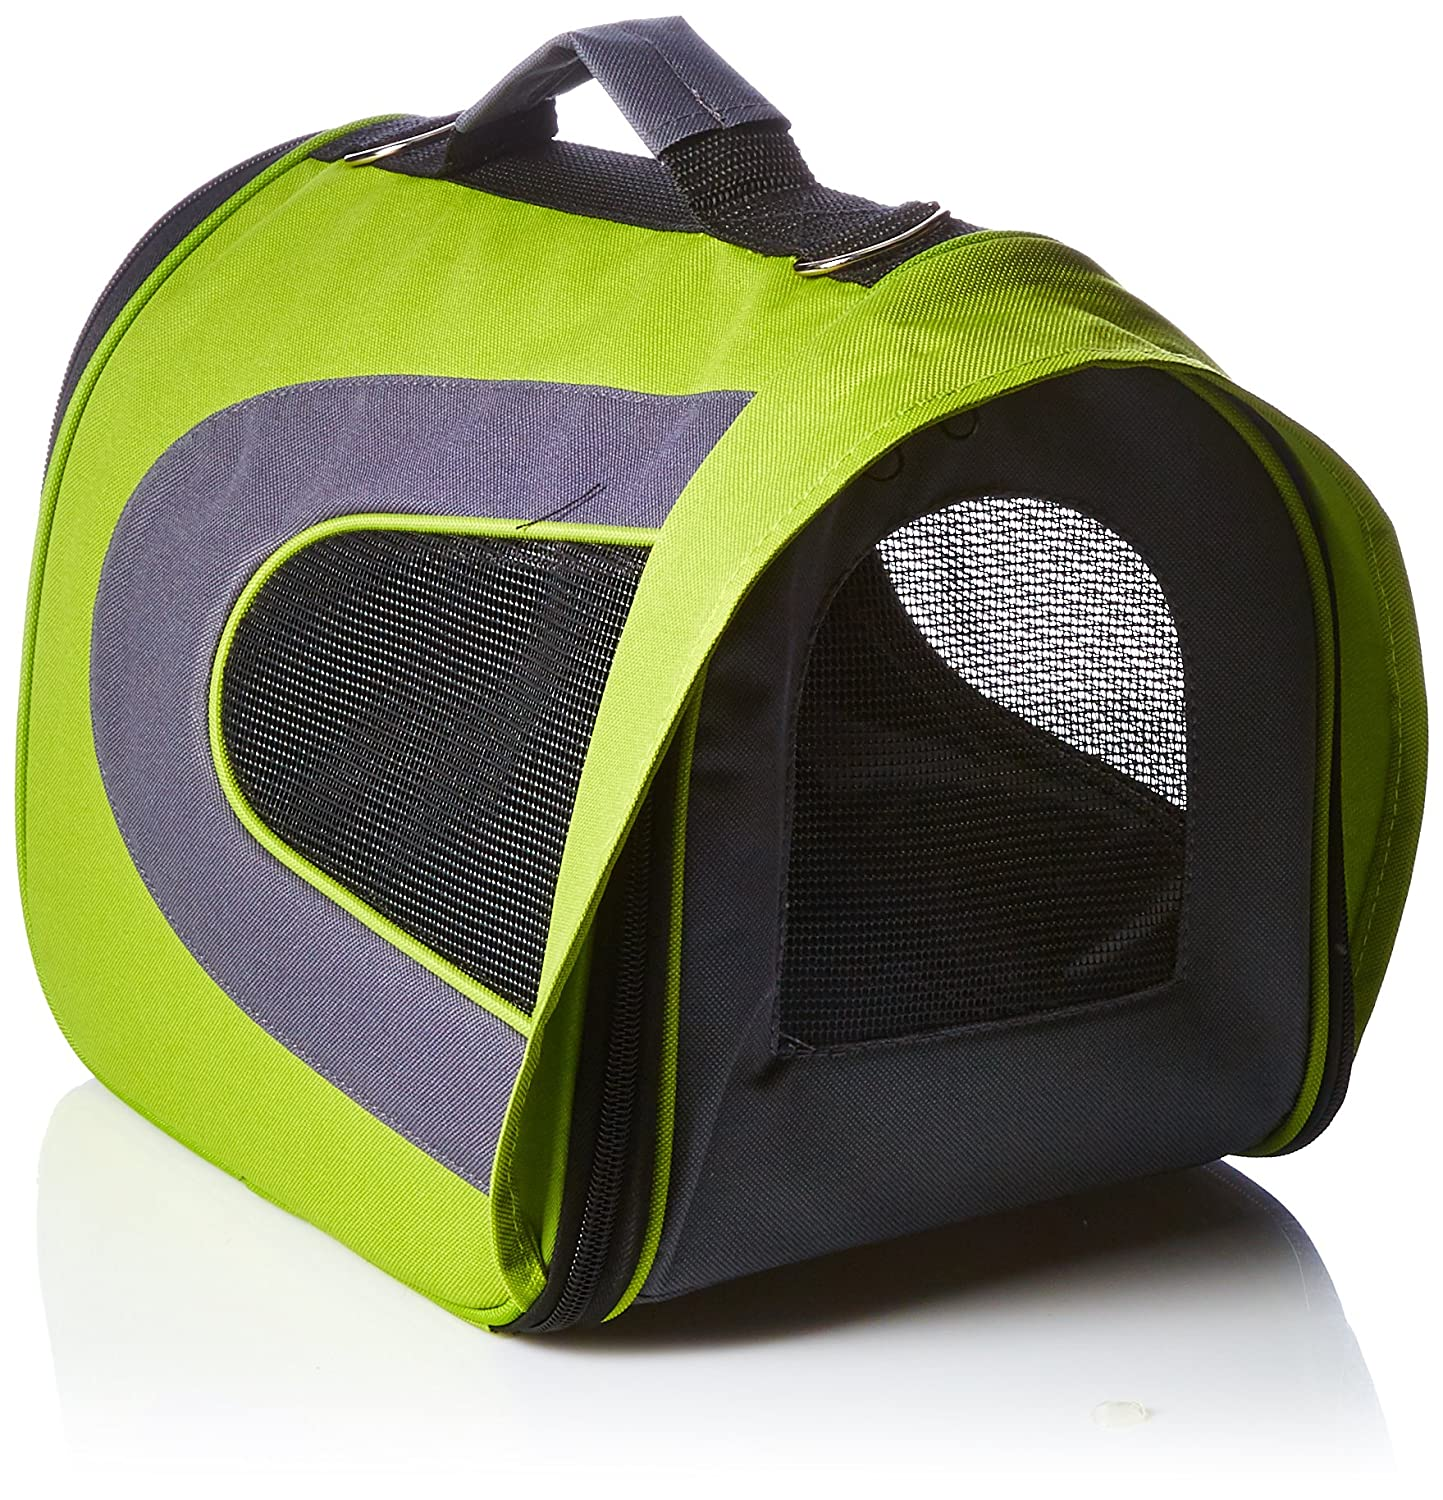 Iconic Pet Furrygo Universal Collapsible Airline Carrier, Lime Green, Small